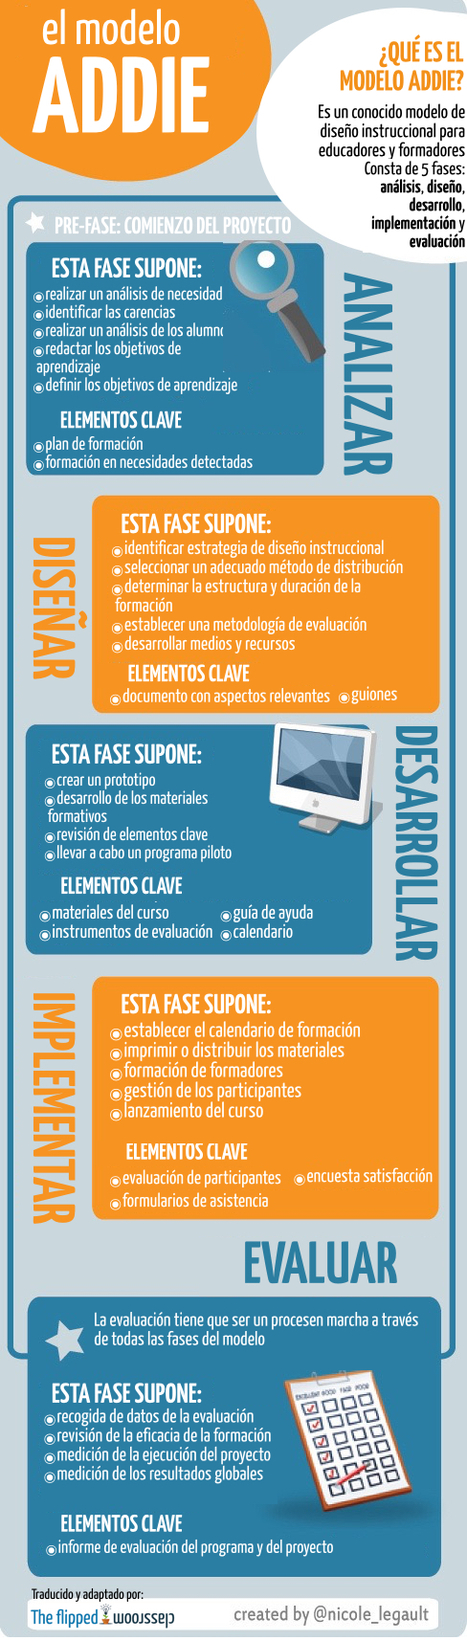 Un infográfico sobre el modelo ADDIE | Aprendizajes 2.0 | Scoop.it